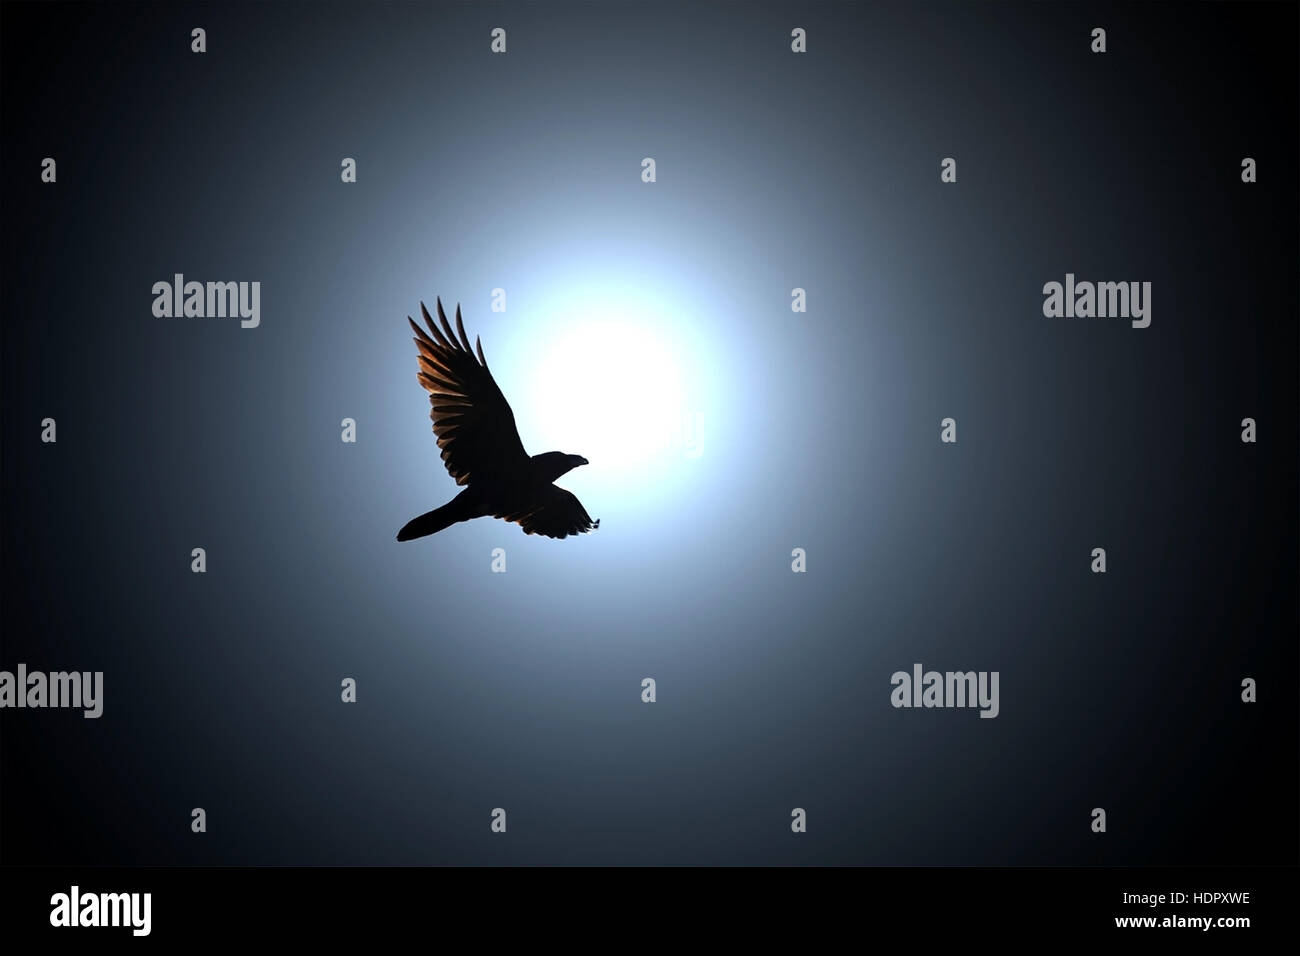 Mysterious Black Raven flies against Full Moon at Night. - Stock Image